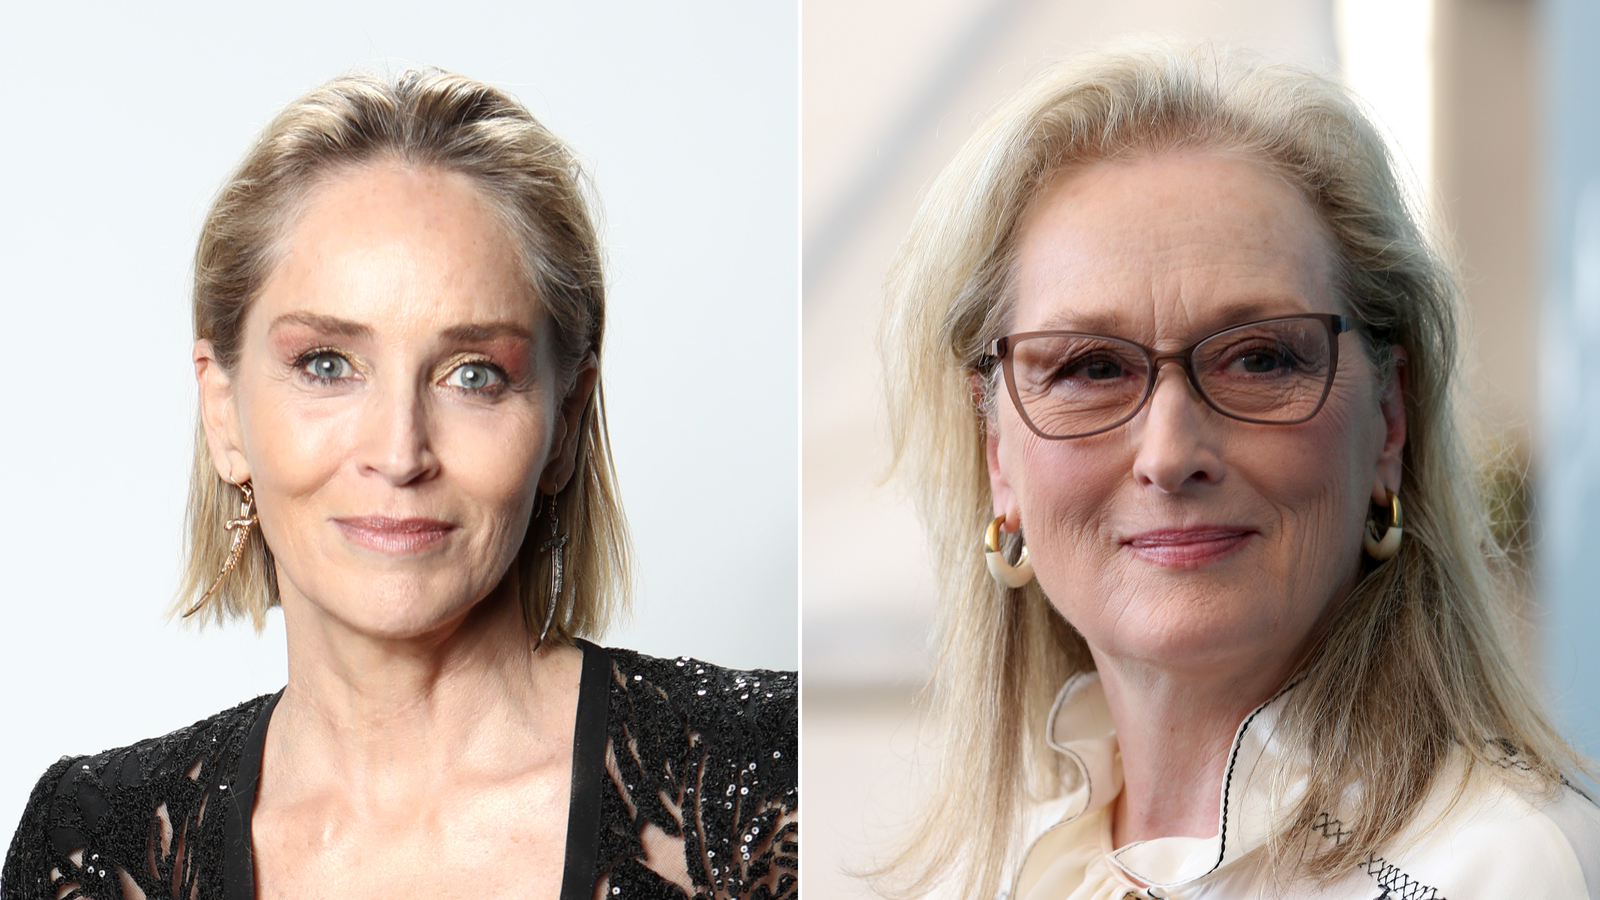 Sharon Stone thinks there's more to Hollywood than Meryl Streep